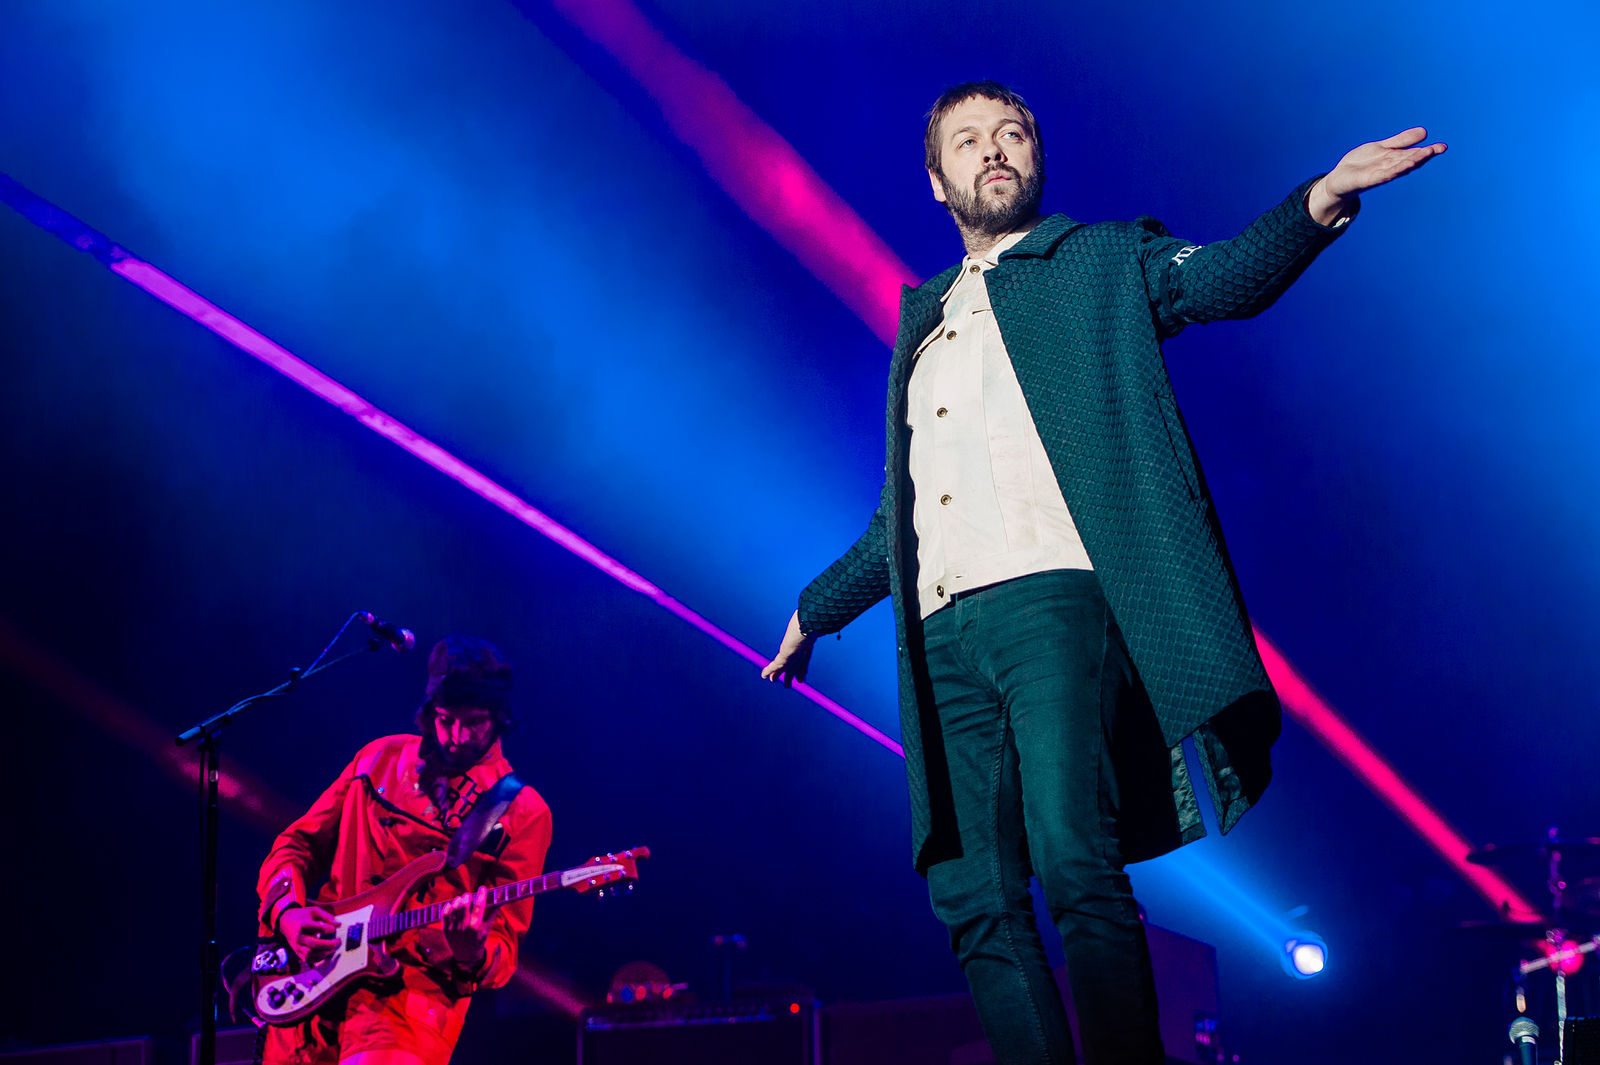 KASABIAN HEADLINING DAY TWO AT LEEDS FESTIVAL 2017 - 26/08/2017  PICTURE BY: MATT EACHUS